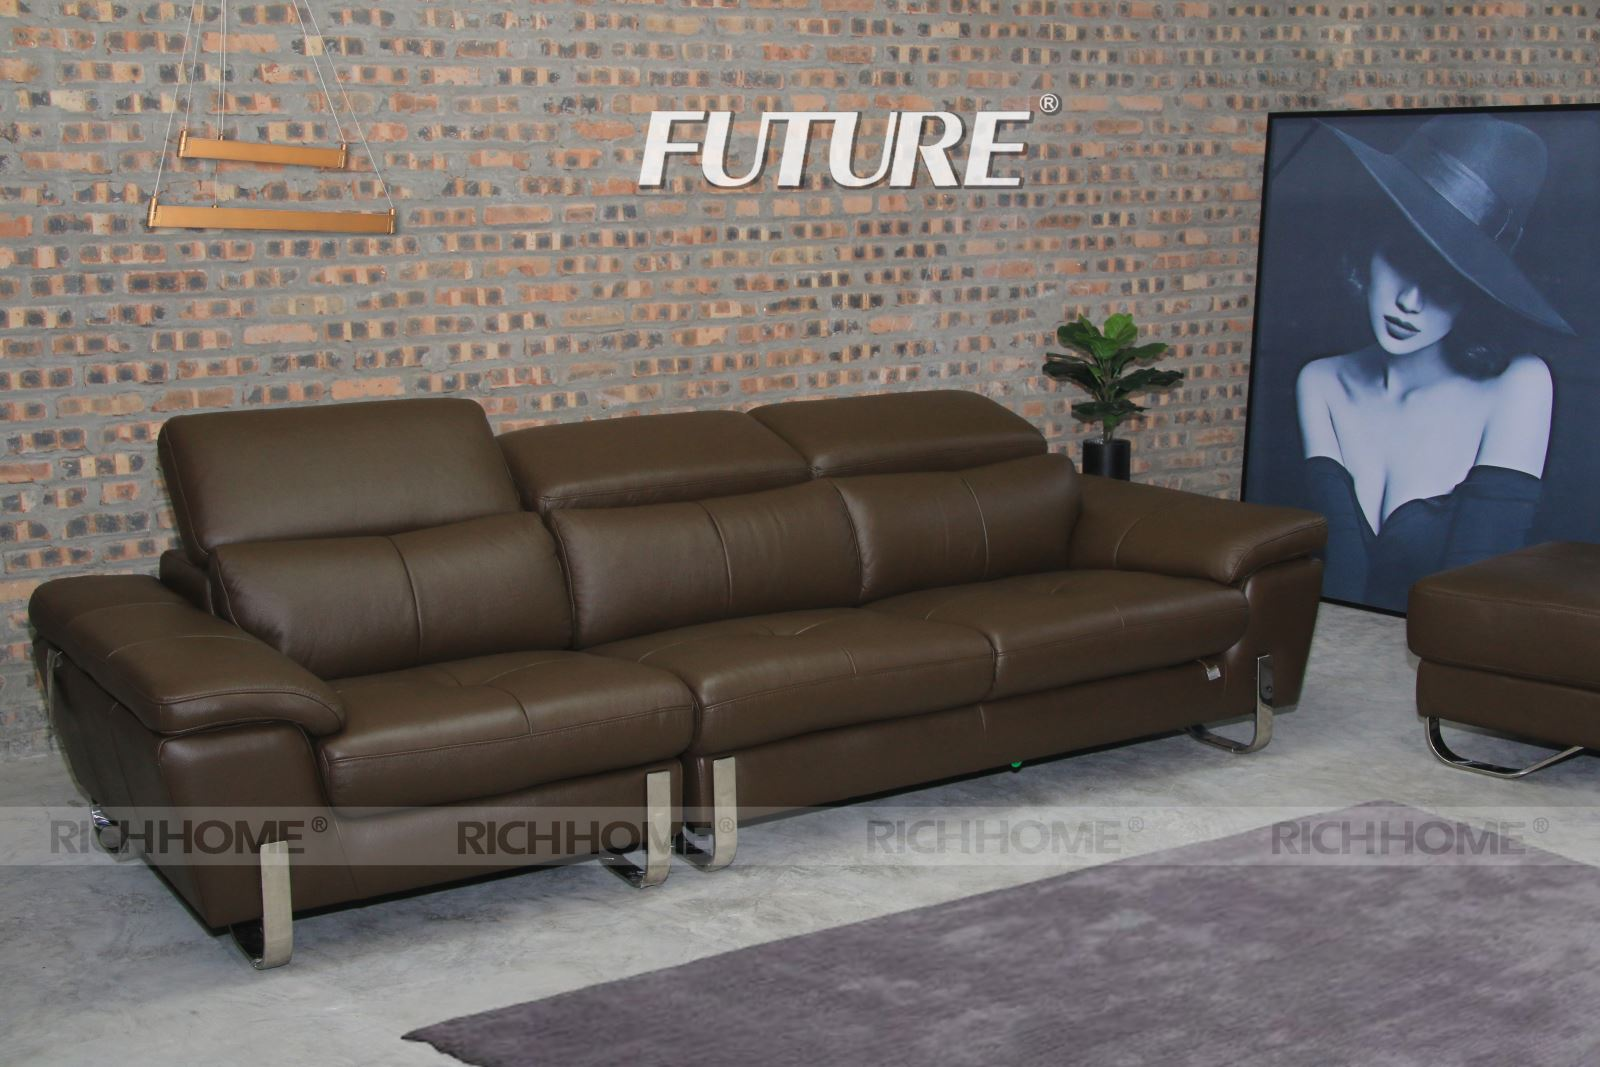 SOFA DA BÒ - FUTURE MODEL 7054 1+2+3